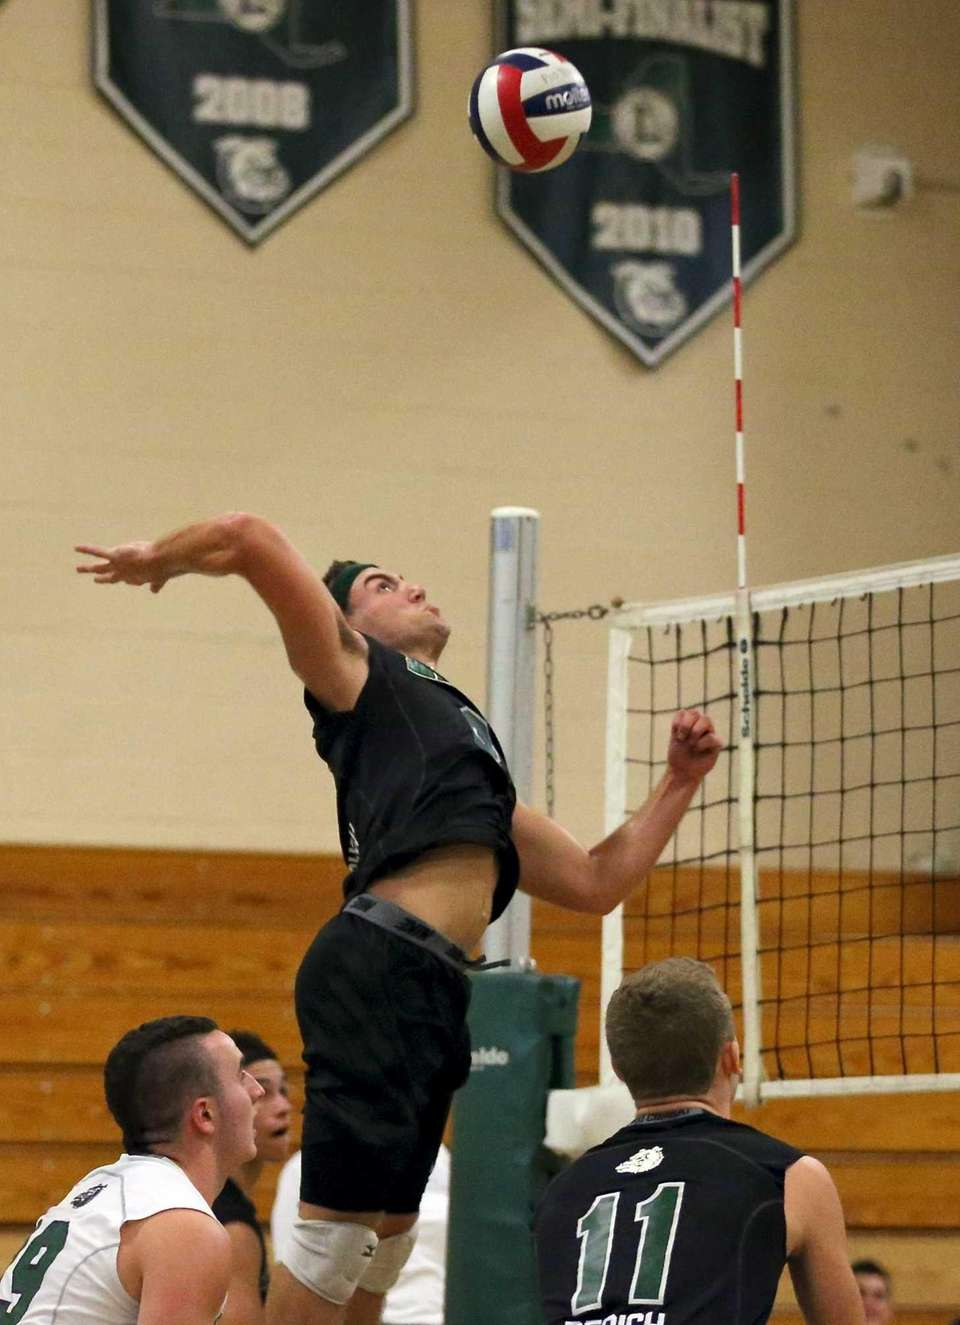 Lindenhurst's Ryan McDonough goes for the kill shot